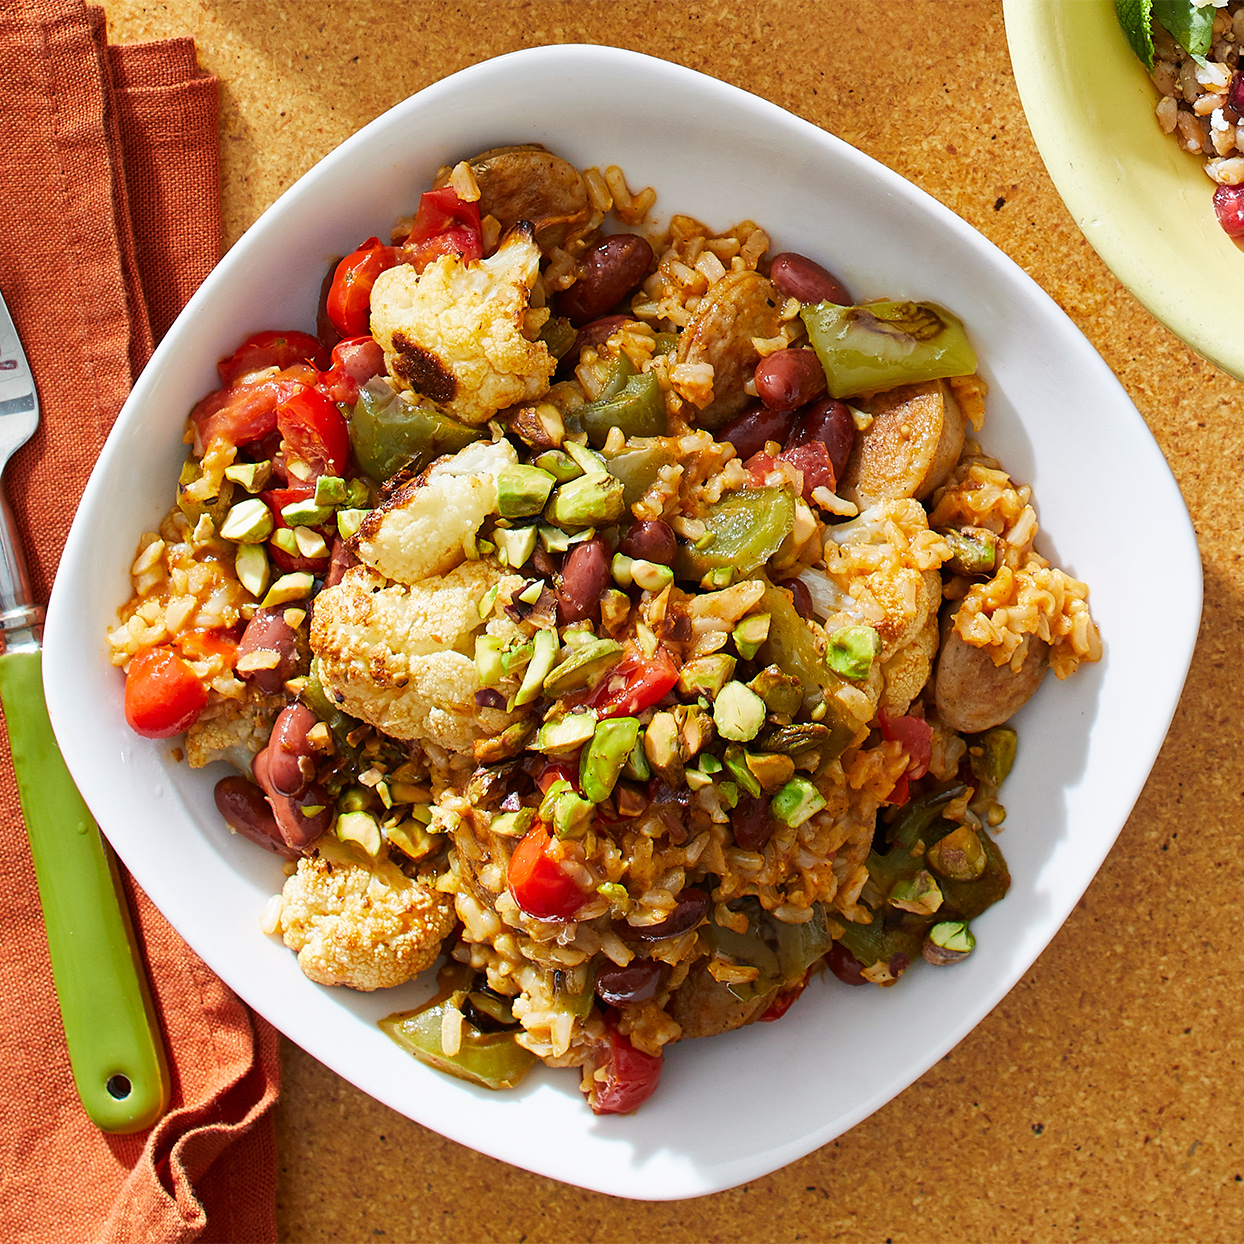 Red Beans & Rice with Vegetables